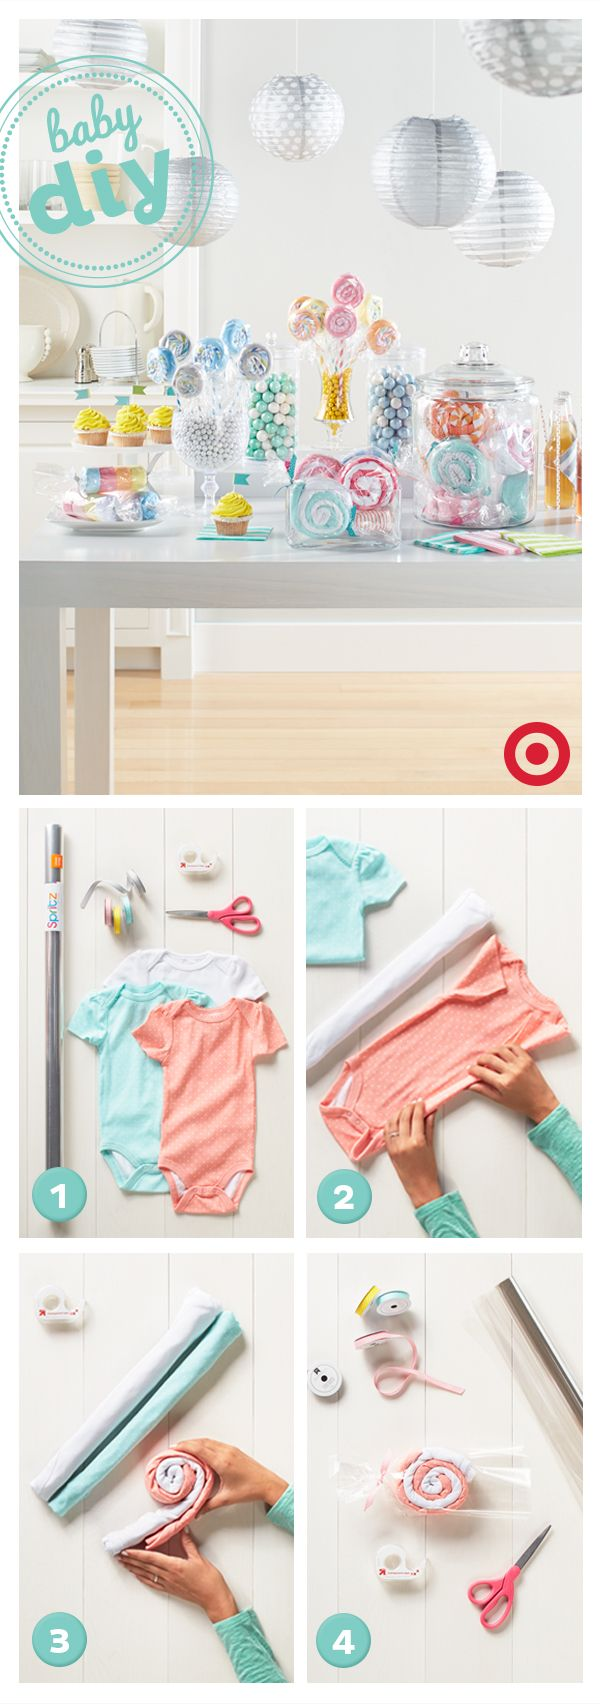 Baby Shower Themes At Target ~ Here s a sweet diy idea for the next baby shower you throw